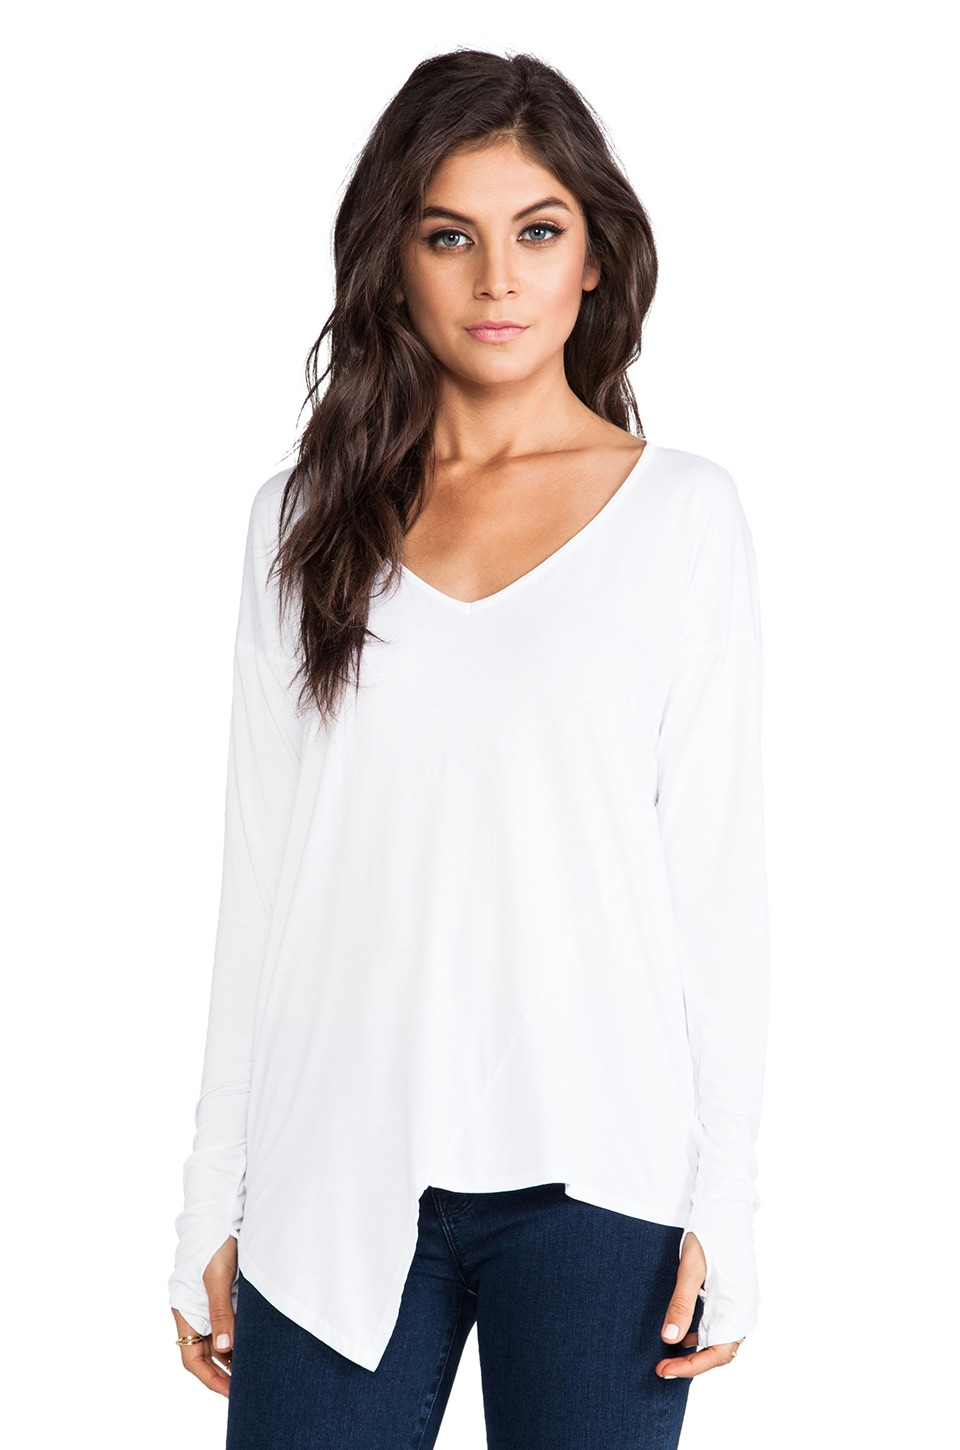 Feel the Piece Flame Long Sleeve in White